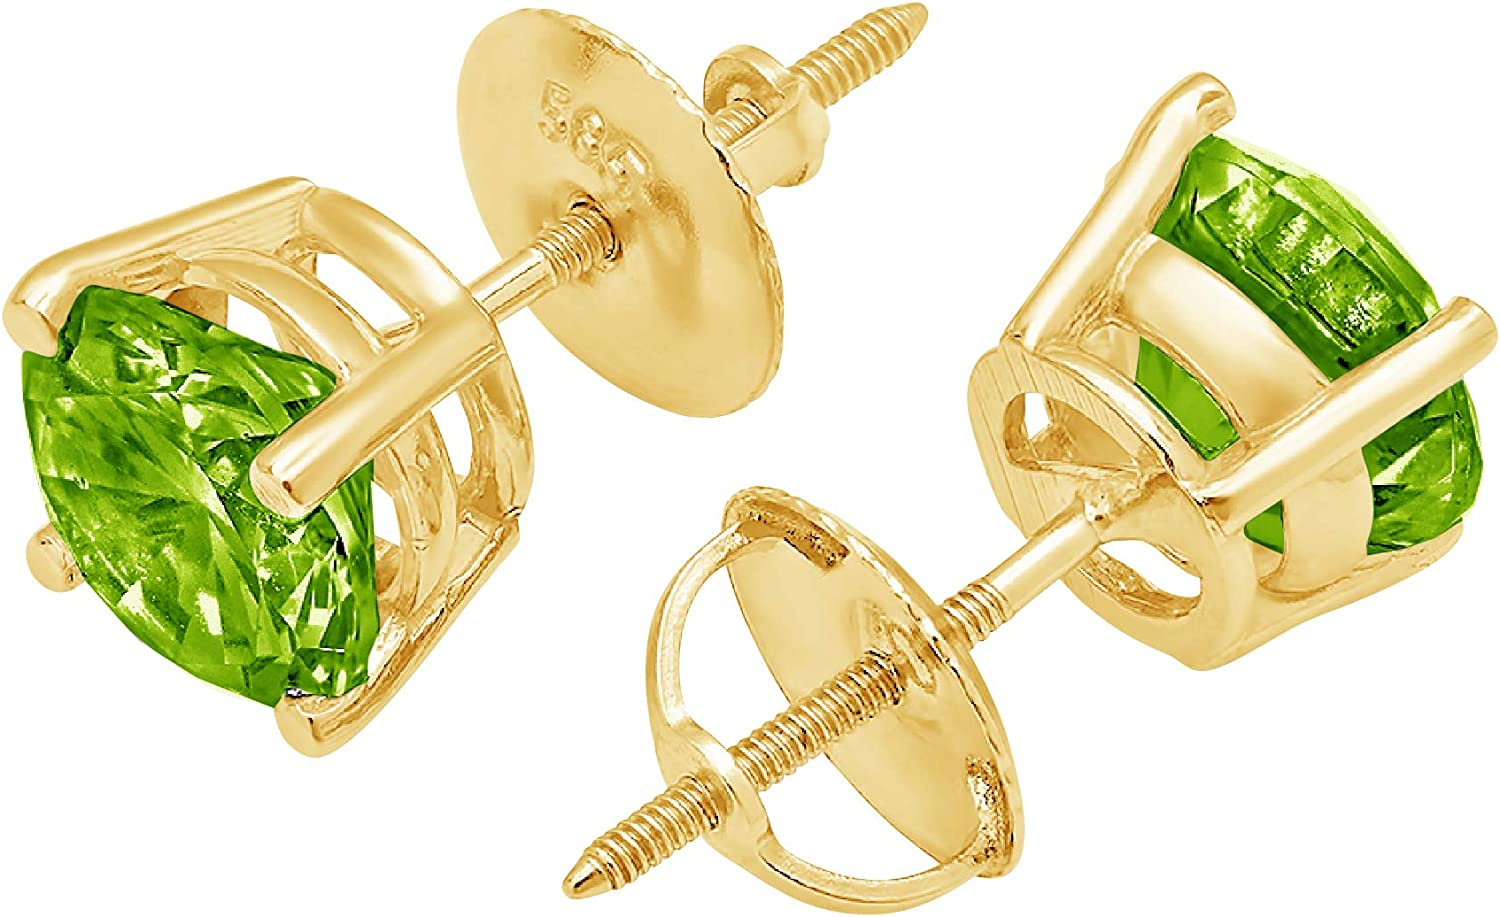 Clara Pucci 1.50 ct Brilliant Round Cut Solitaire VVS1 Fine Natural Green Peridot Gemstone Pair of Stud Earrings Solid 18K Yellow Gold Screw Back